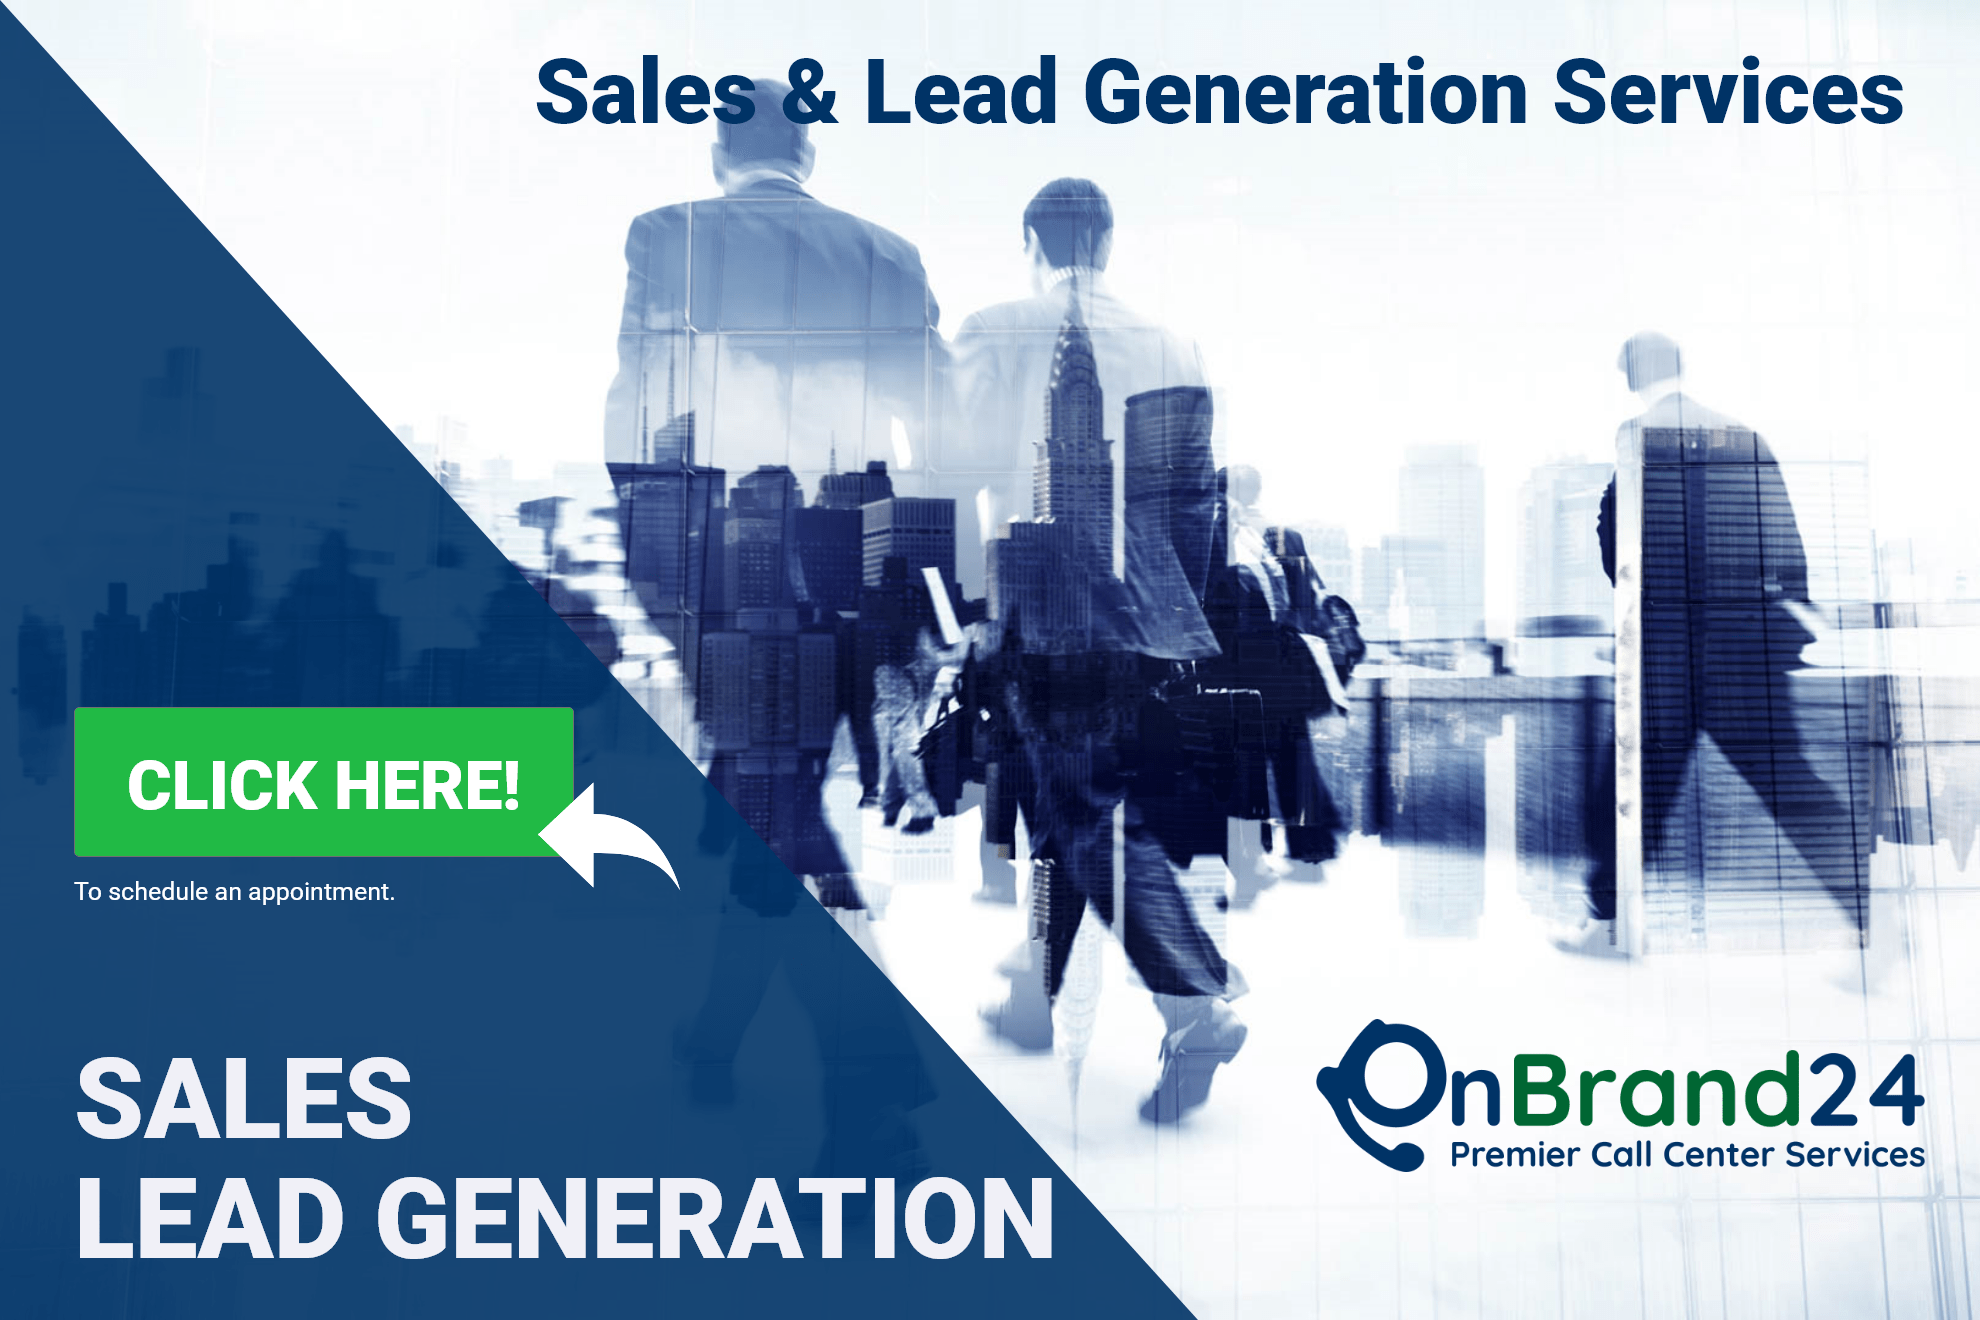 OnBrand24 Inside Sales Outsourcing and Lead Generation Call Center Service